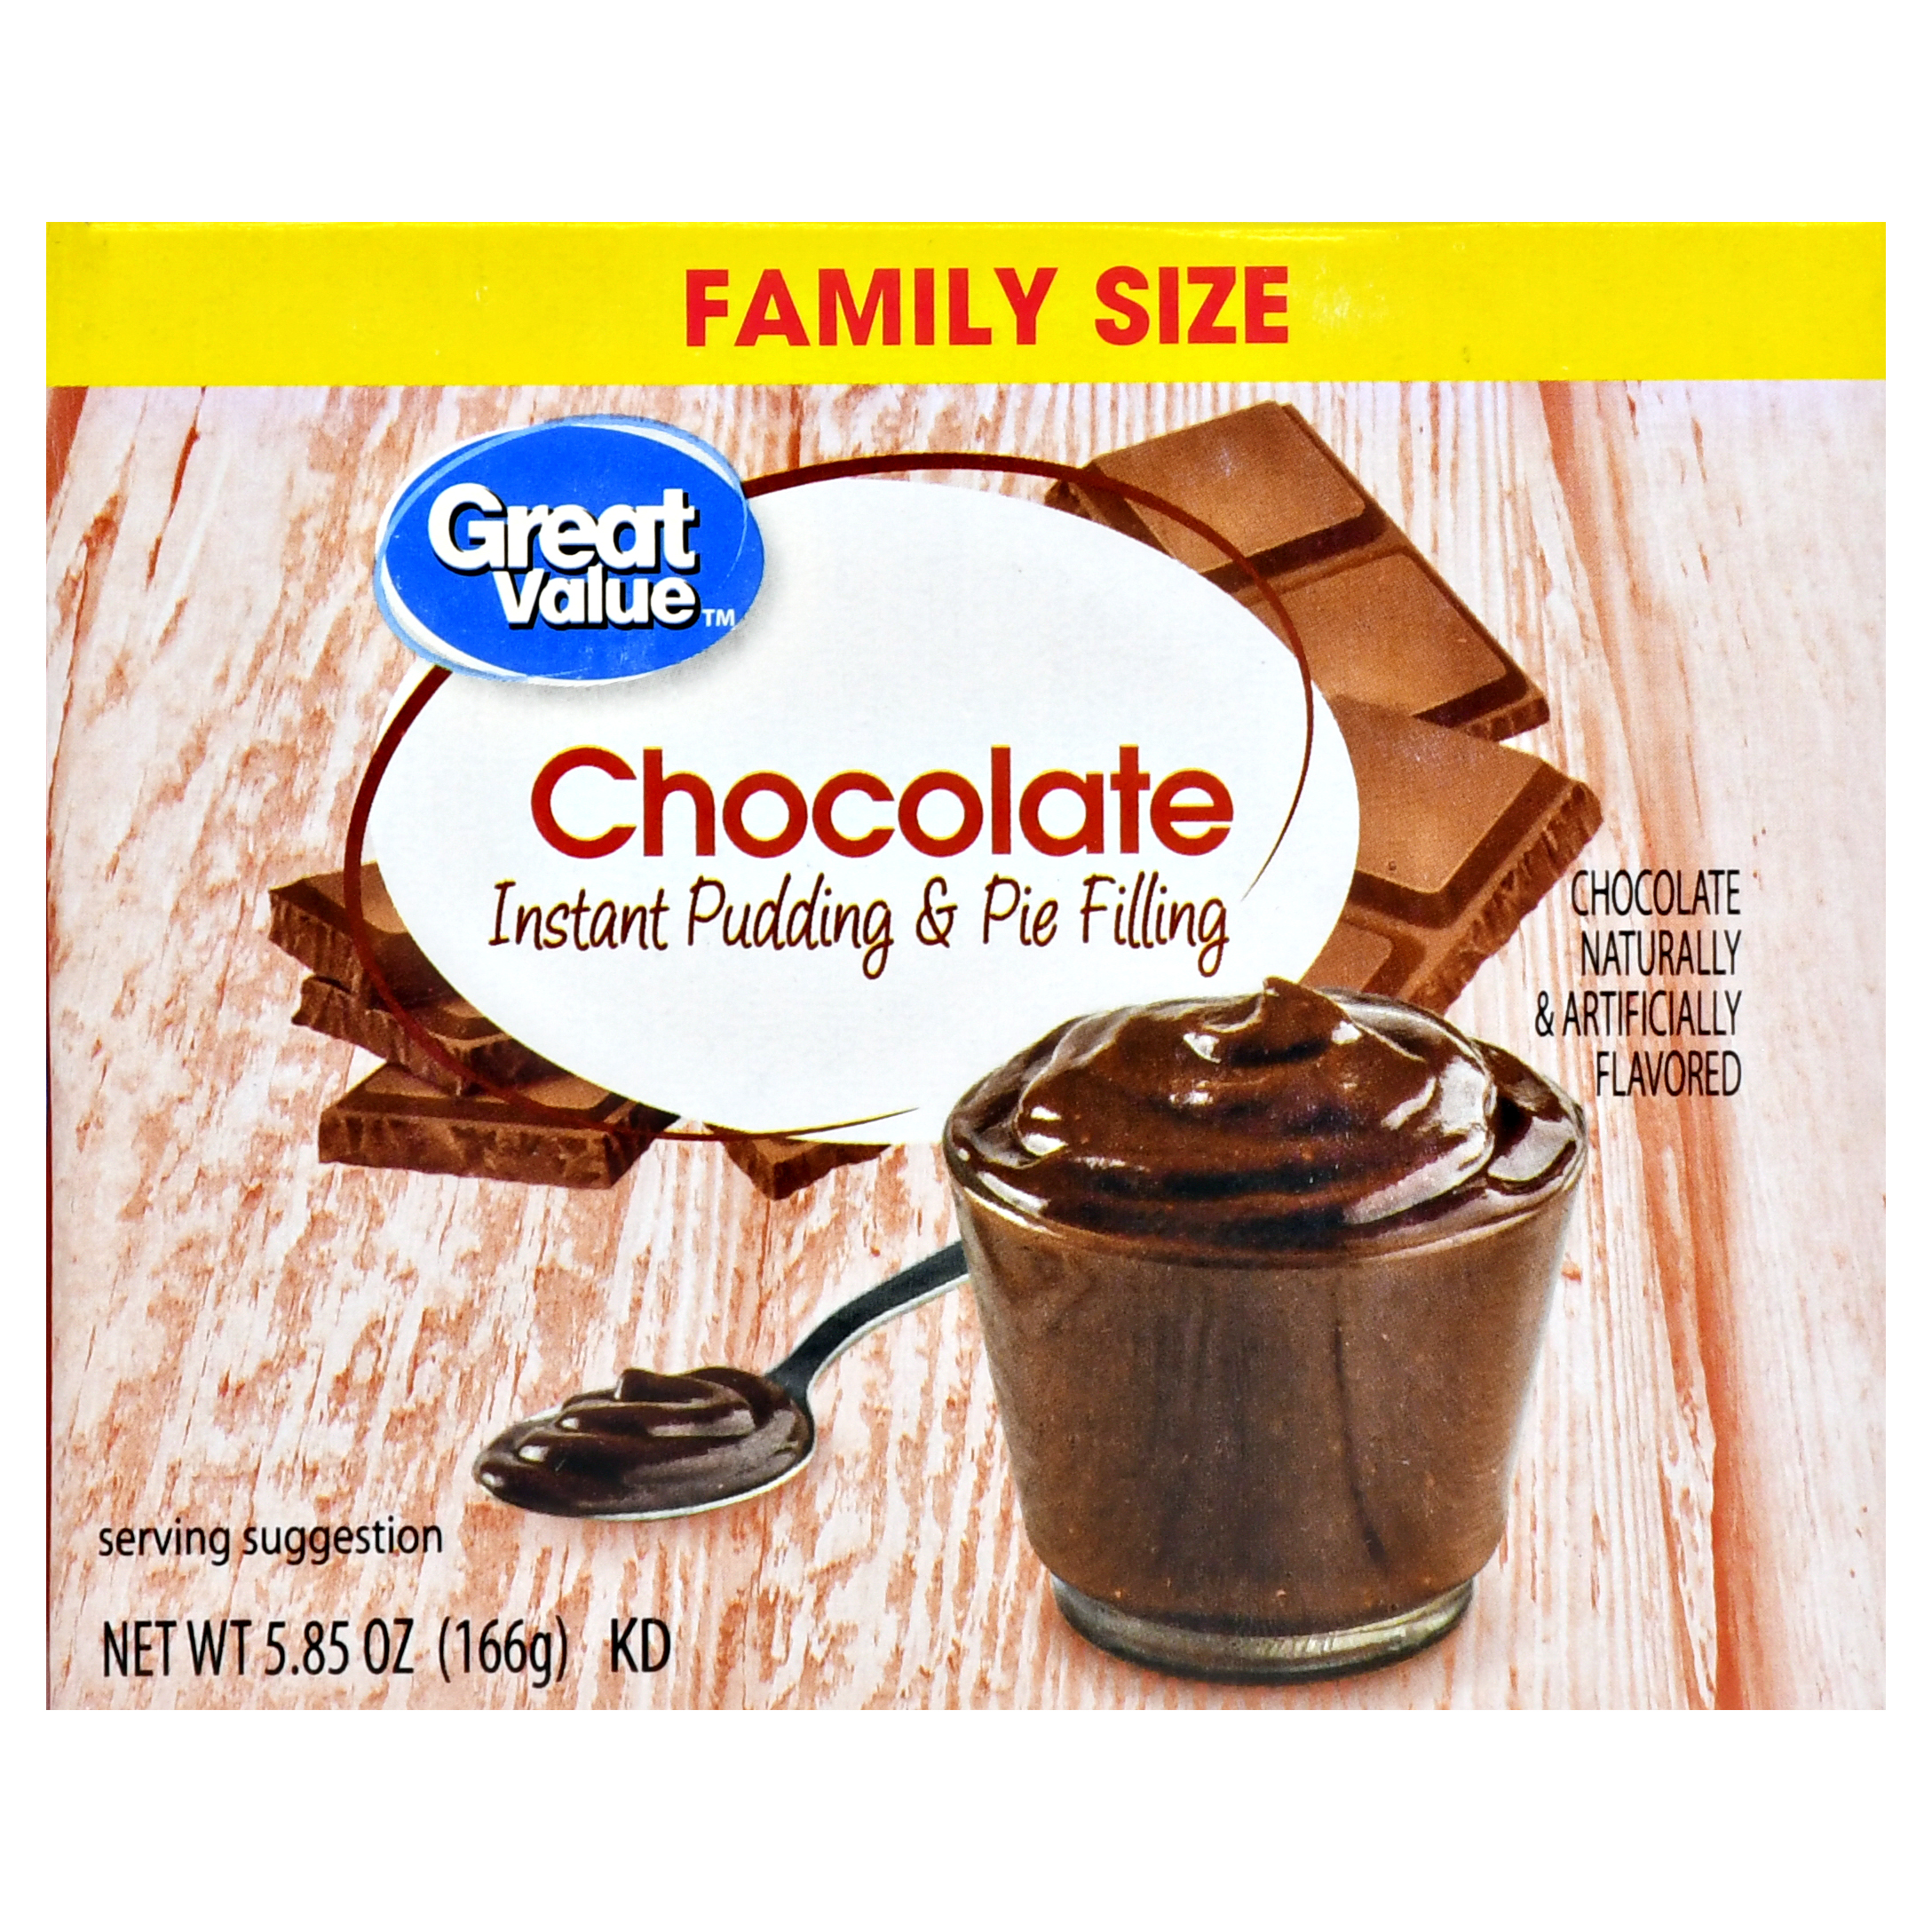 Great value instant pudding & pie filling, family size, chocolate, 5.85 oz